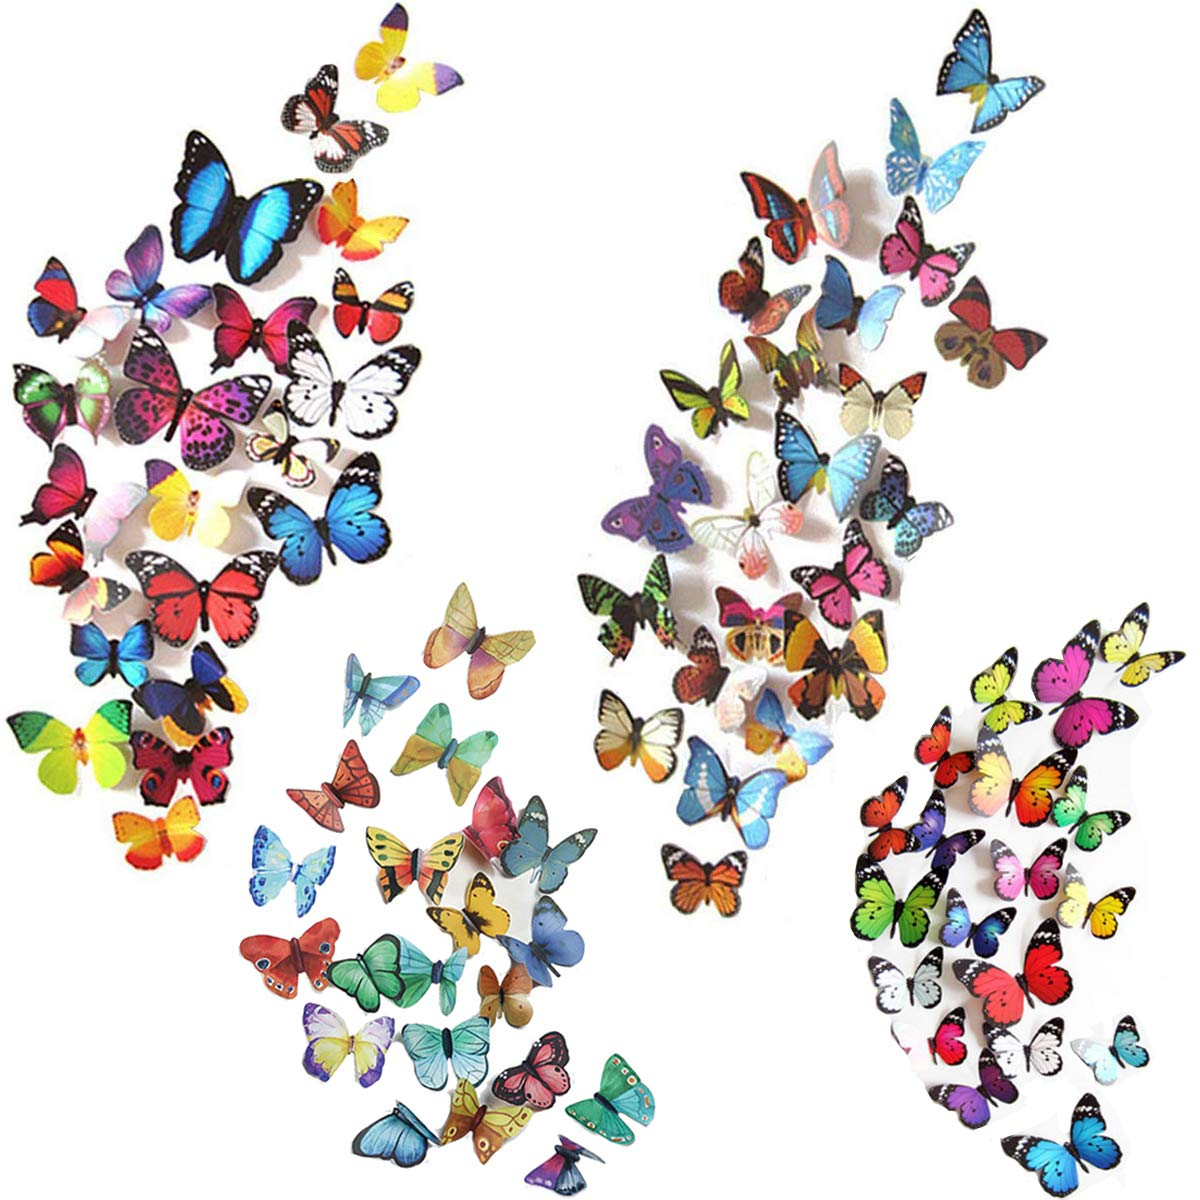 Heansun 123 PCS Butterfly Wall Decals 3D Butterflies Decor Wall Stickers Decal for Wall Removable Mural Stickers Home Nursery Room Decoration